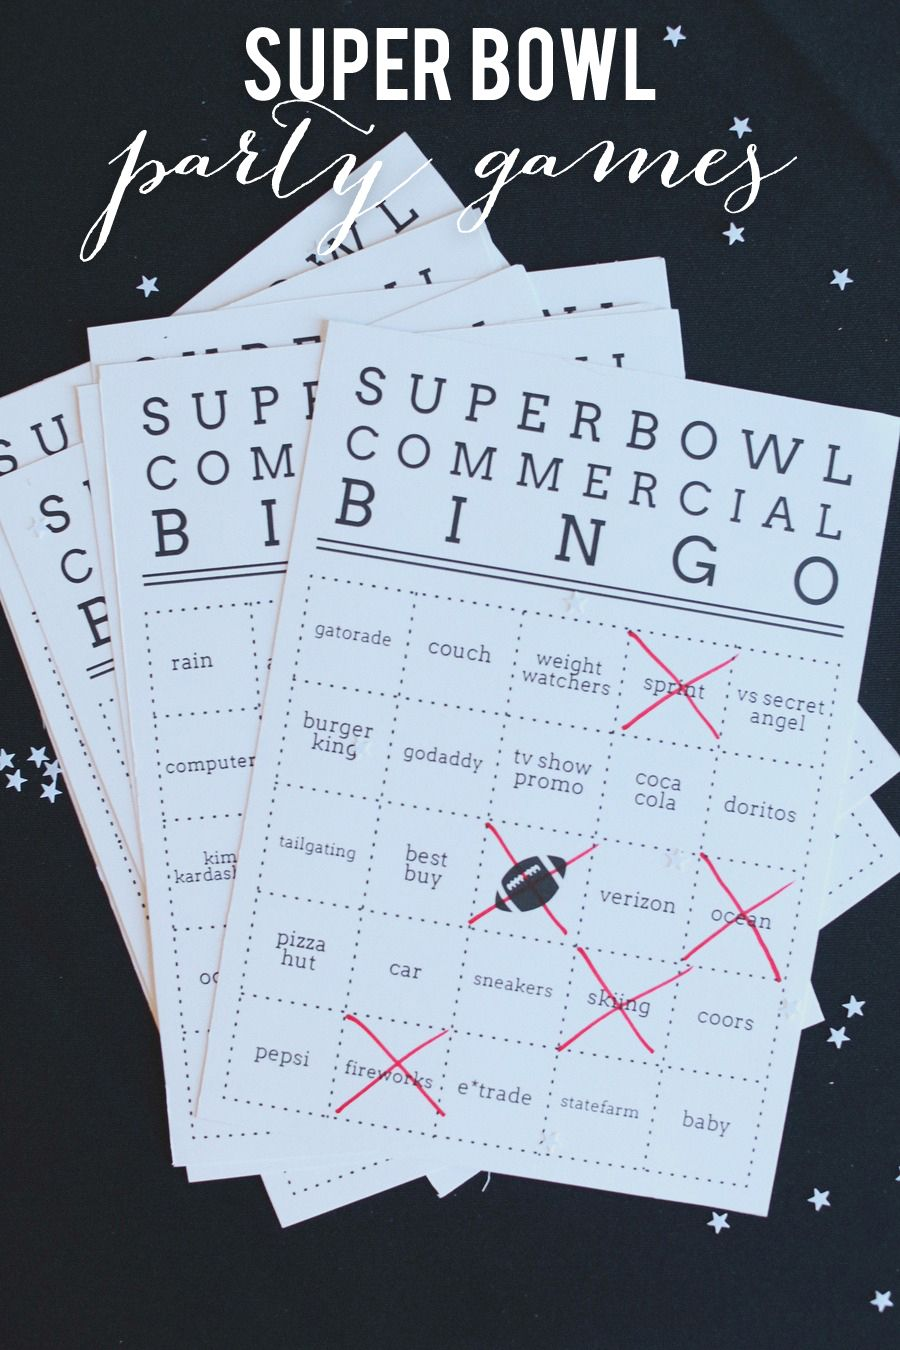 Super Bowl Bingo whoever gets 5 in a row first wins